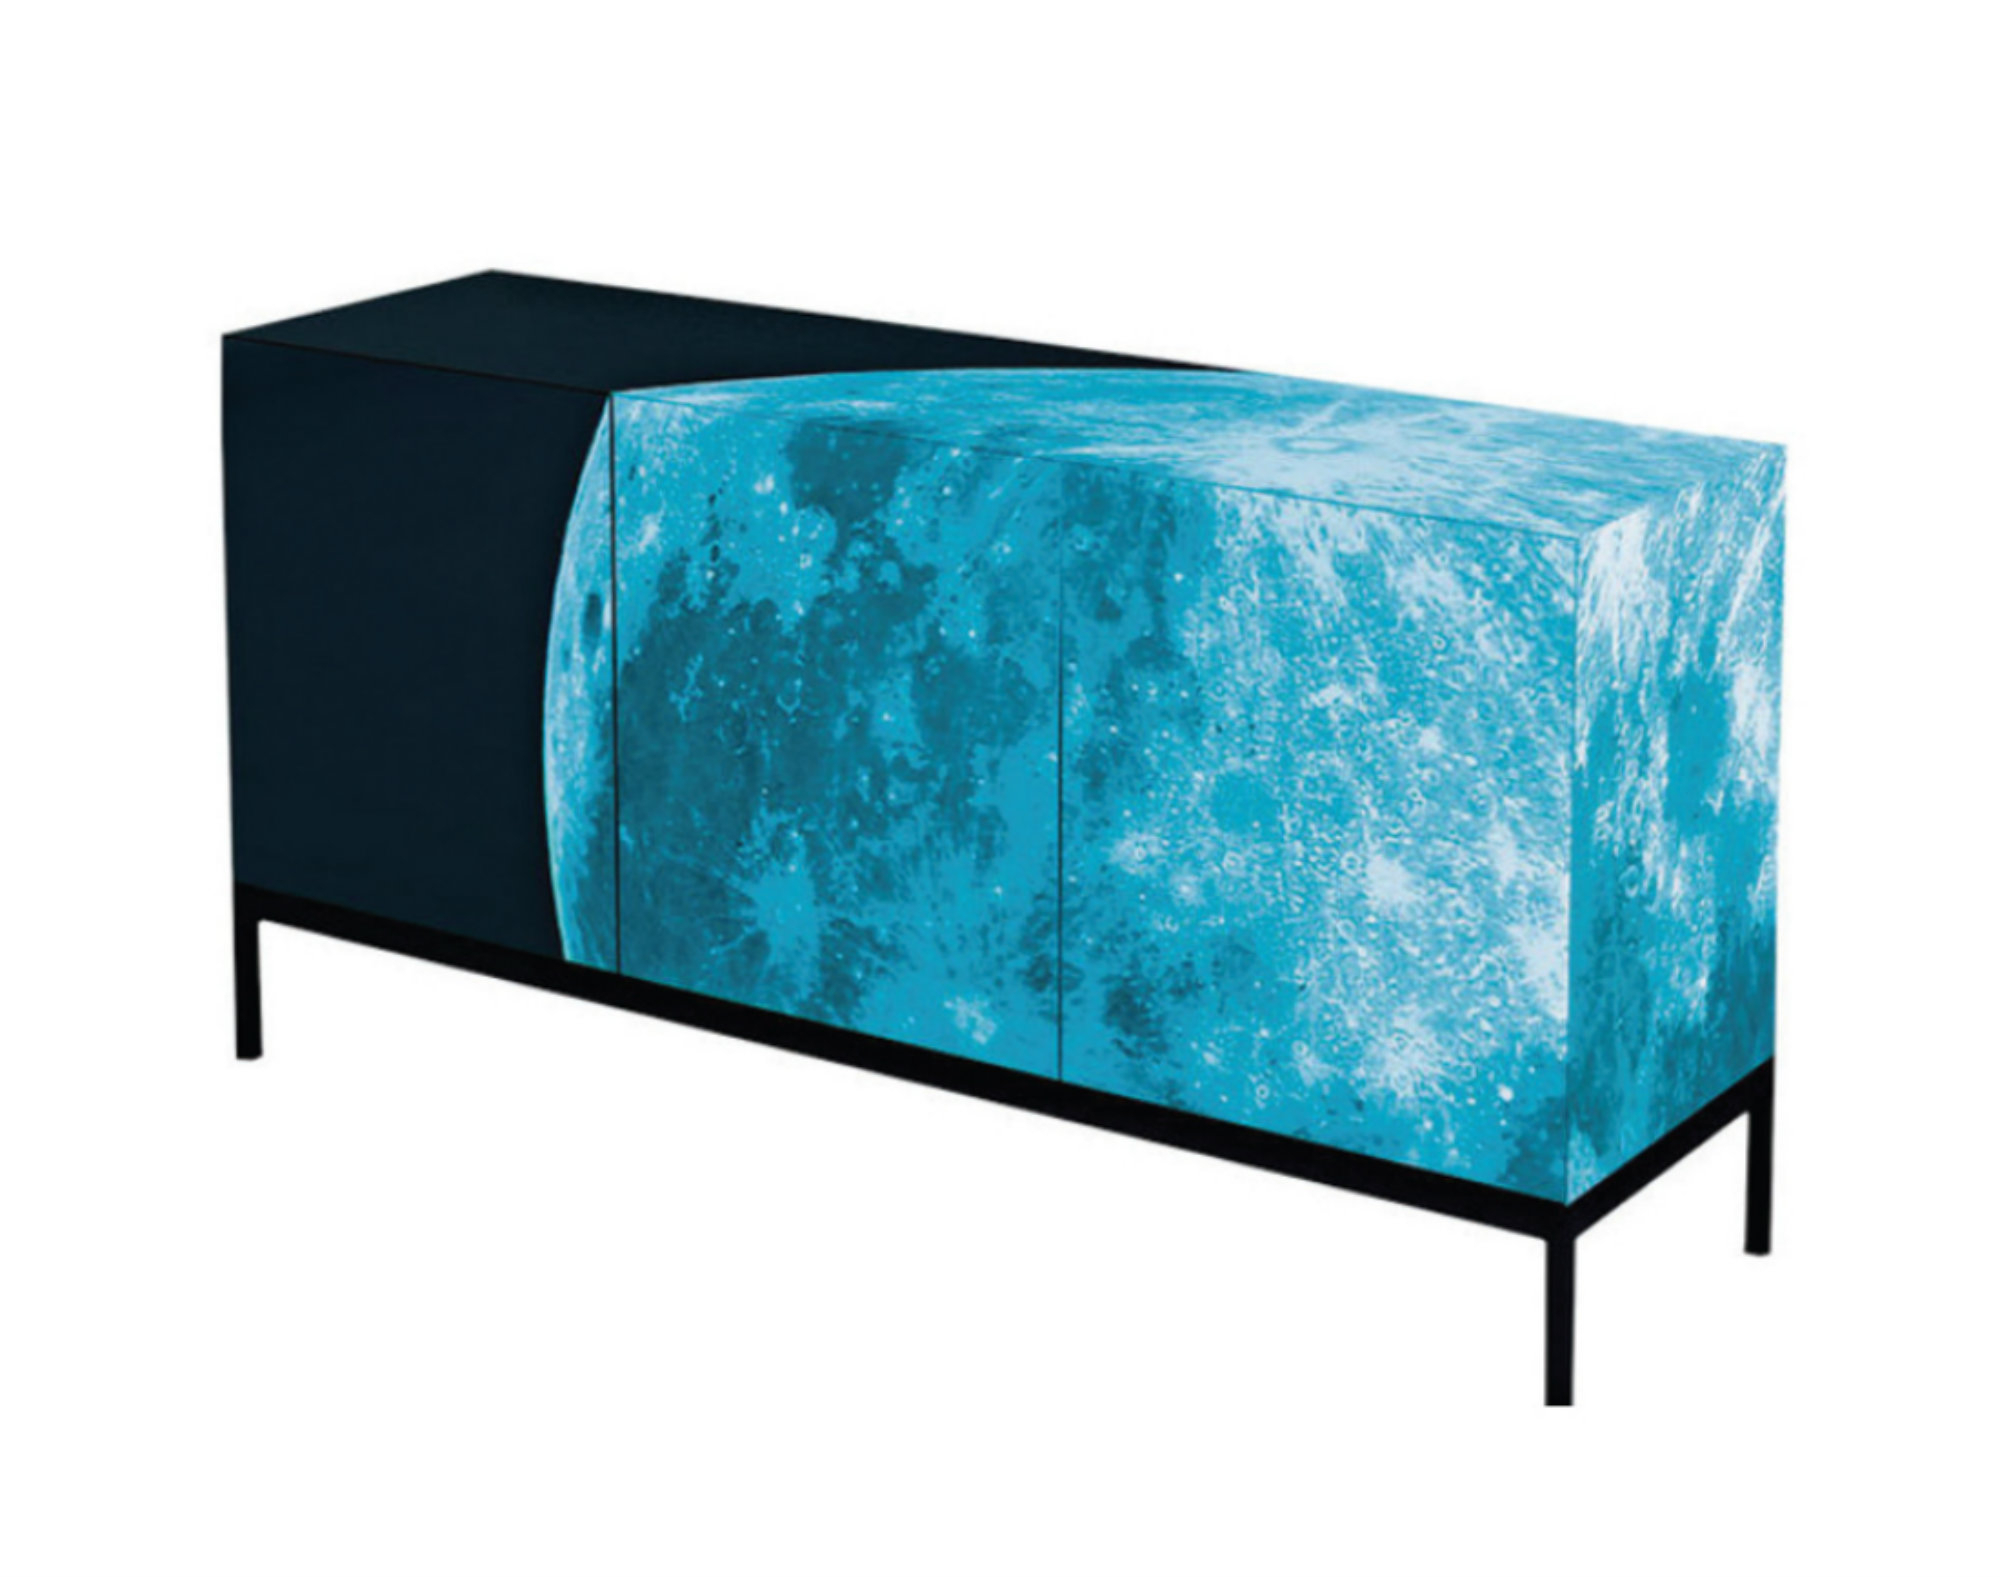 Best And Newest Papadopoulos Sideboards With Regard To Full Moon Limited Edition Sideboard Designedsotirios (View 17 of 20)